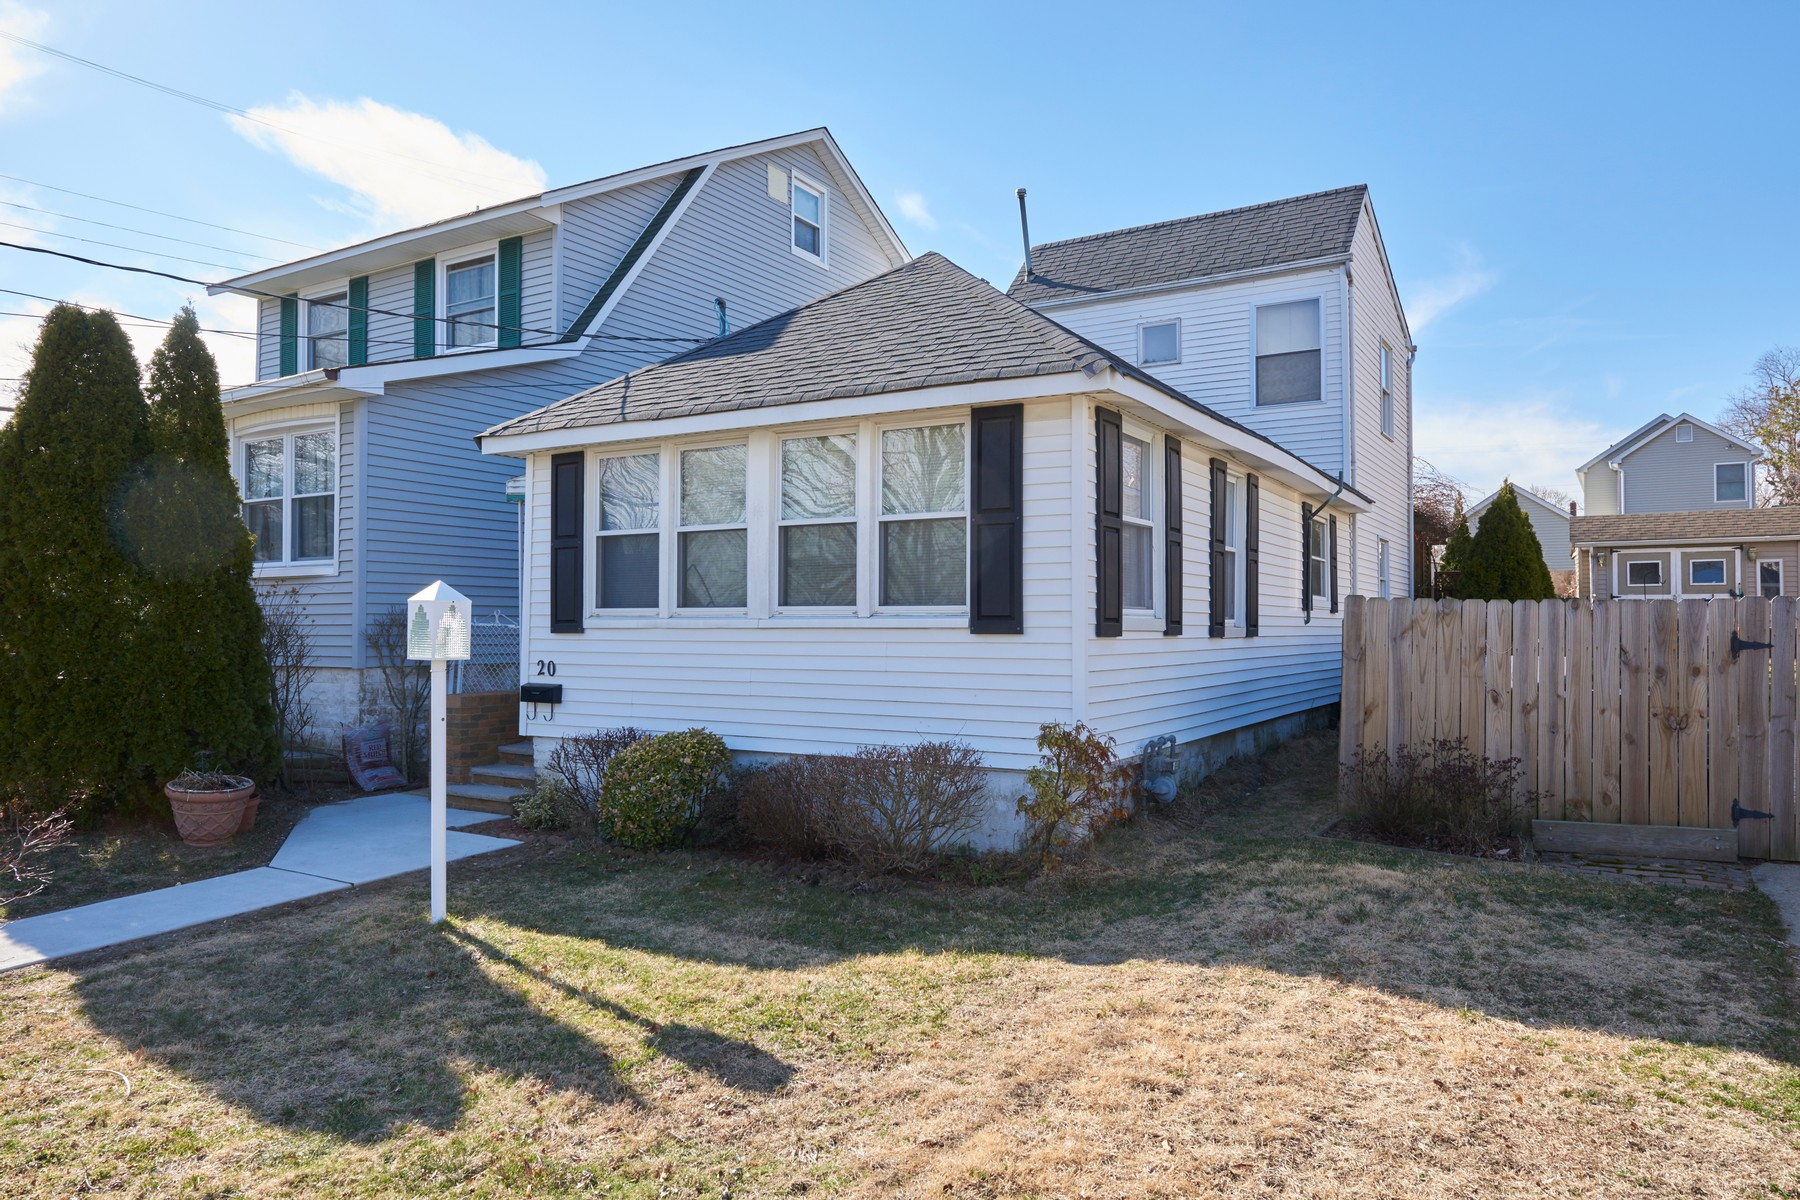 Single Family Home for Sale at 20 Florene Ave. 20 Florence Ave. Leonardo, New Jersey 07737 United States